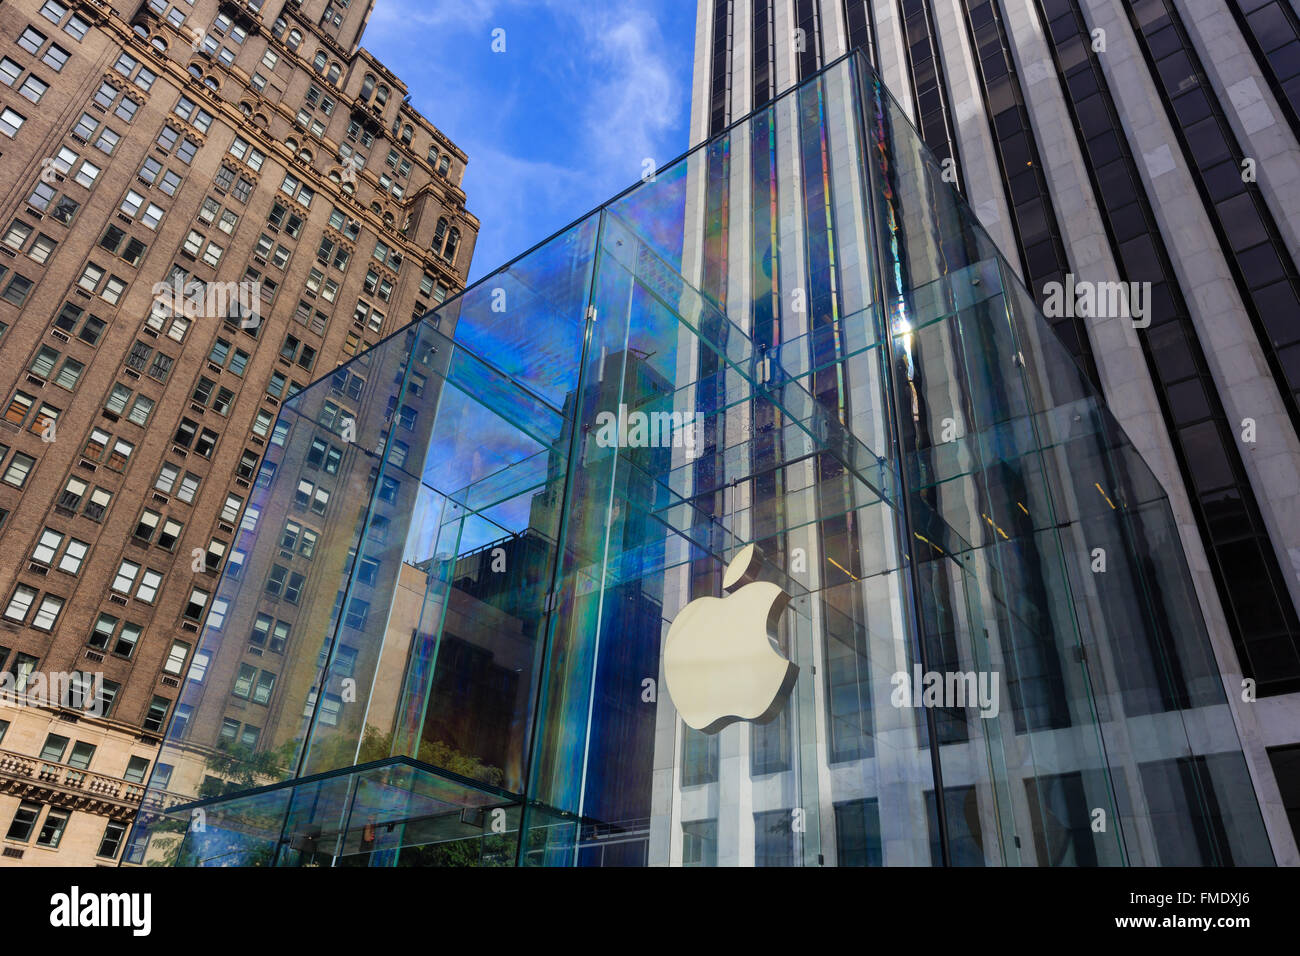 NEW YORK CITY, SEP 16: The famous Apply Store on SEP 15, 2014 at New York City. - Stock Image